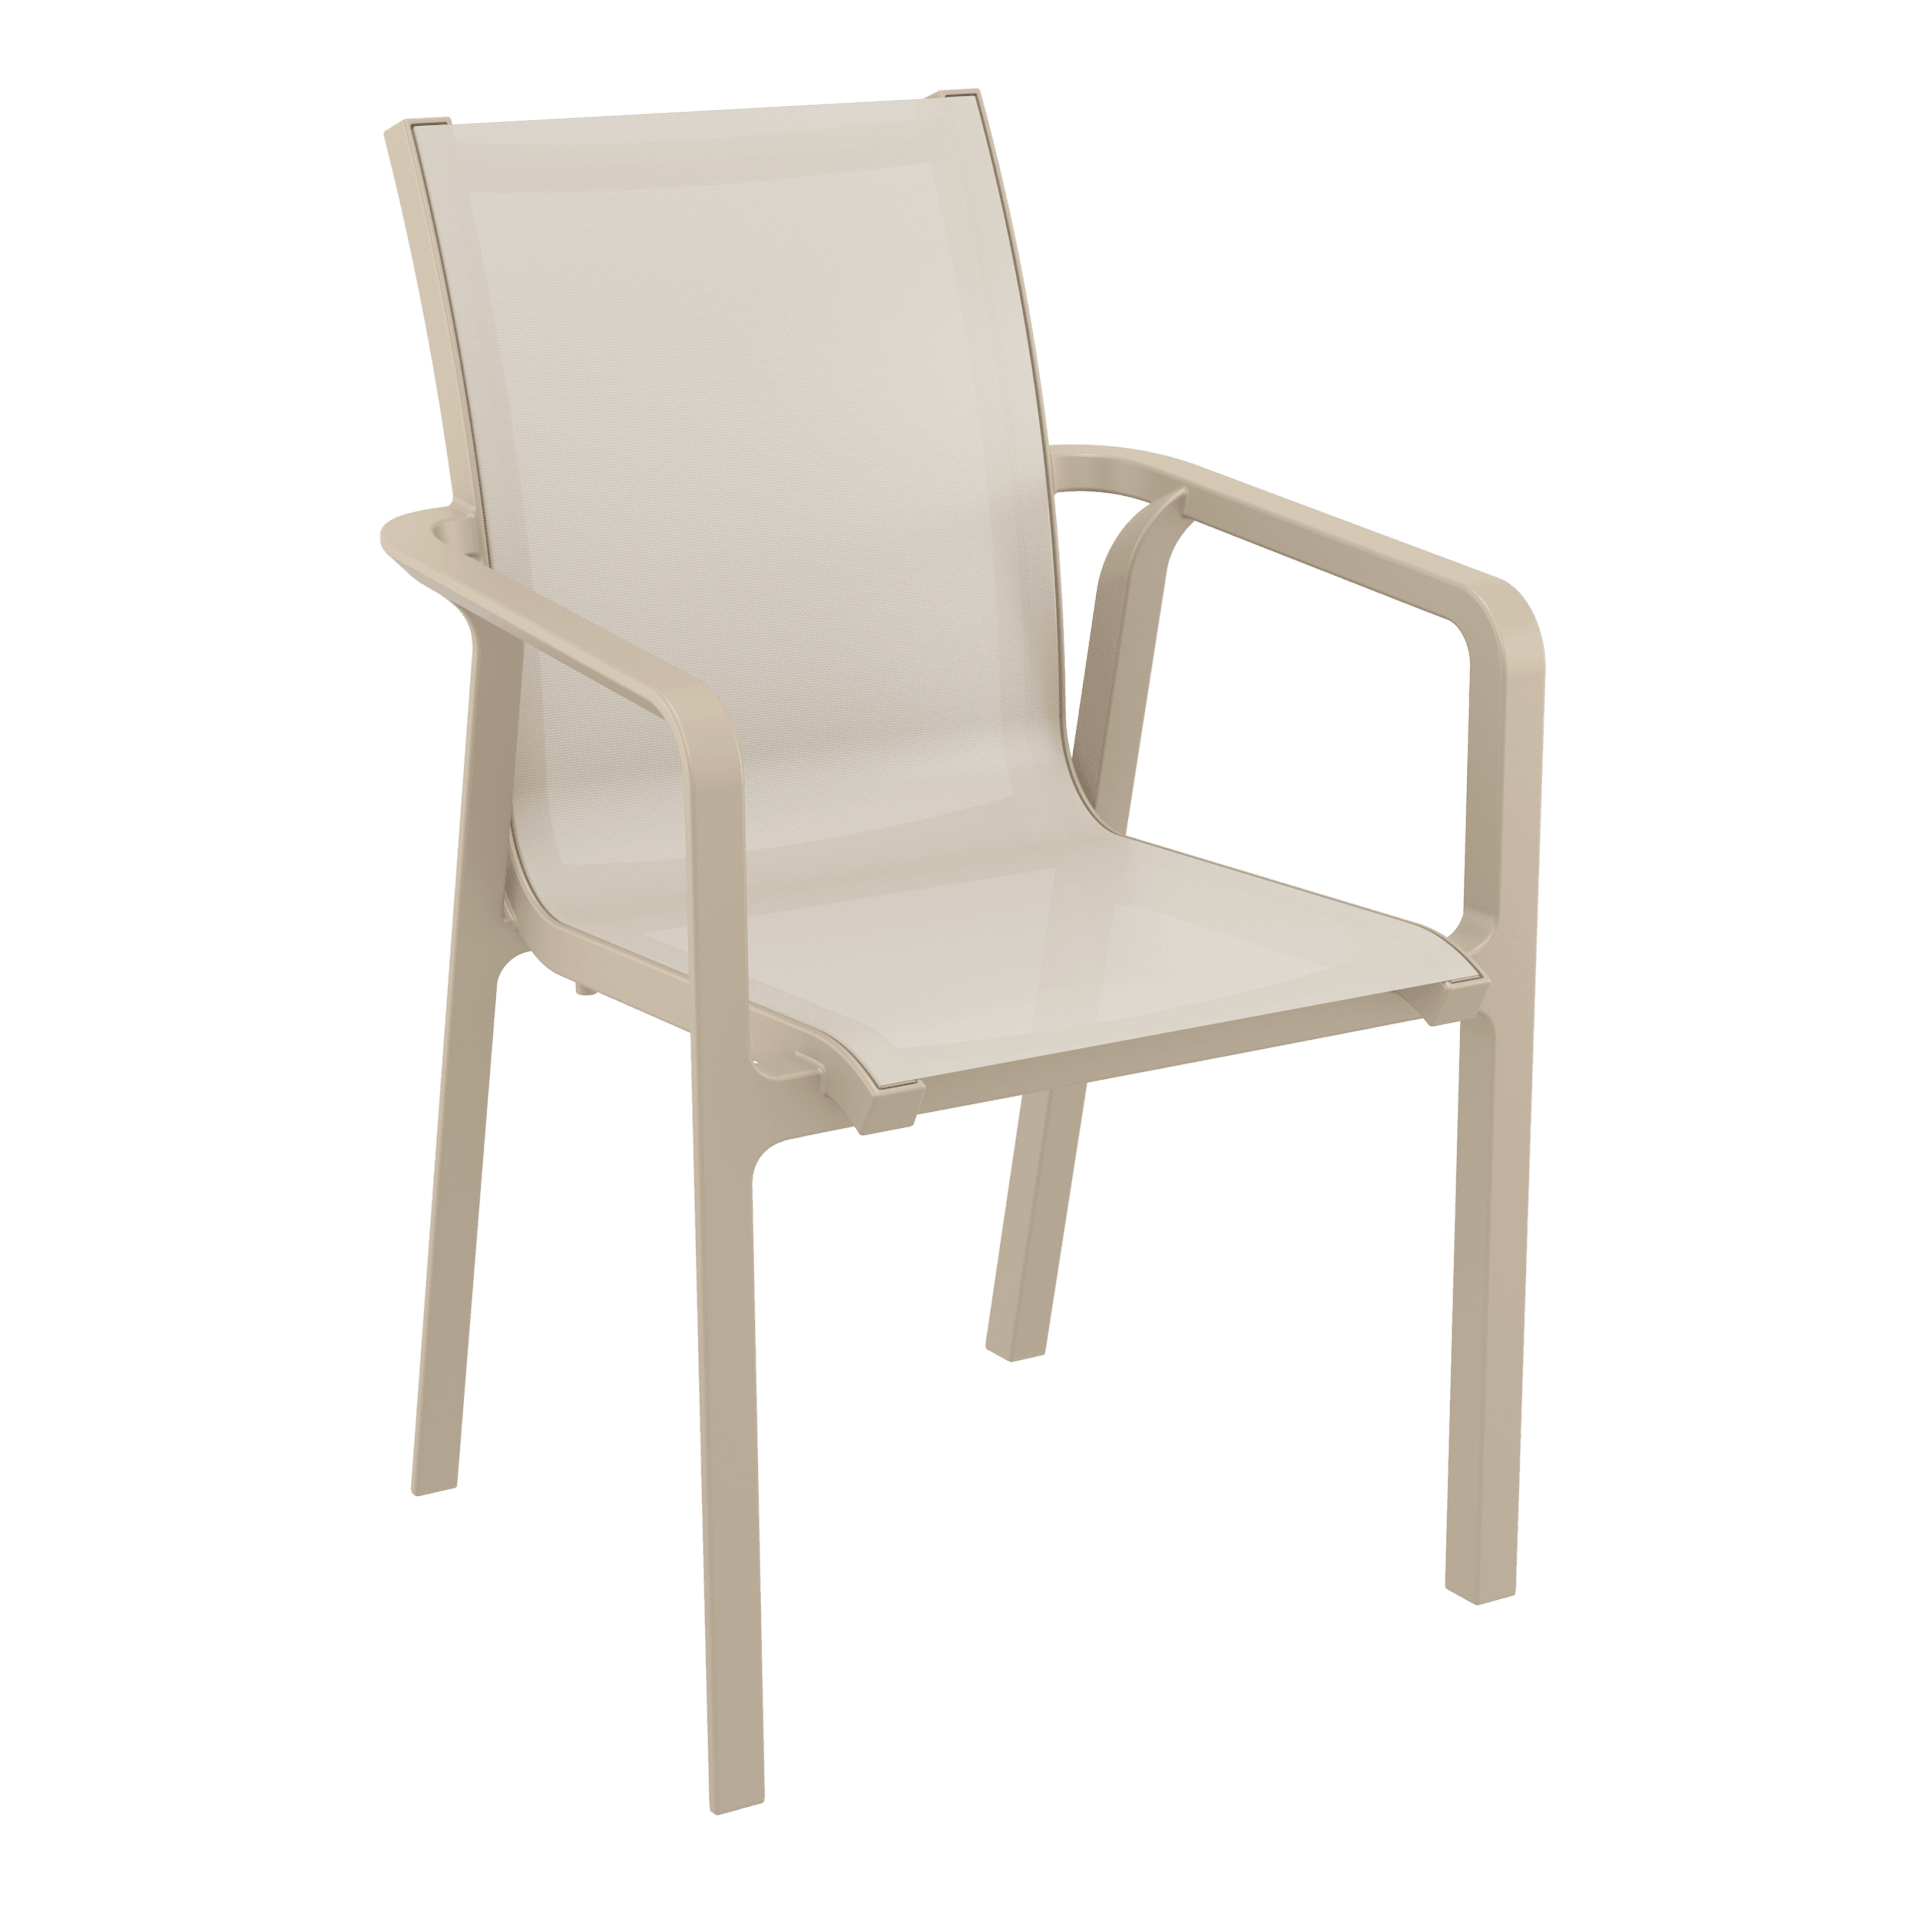 Pacific Arm Chair - Taupe/Taupe